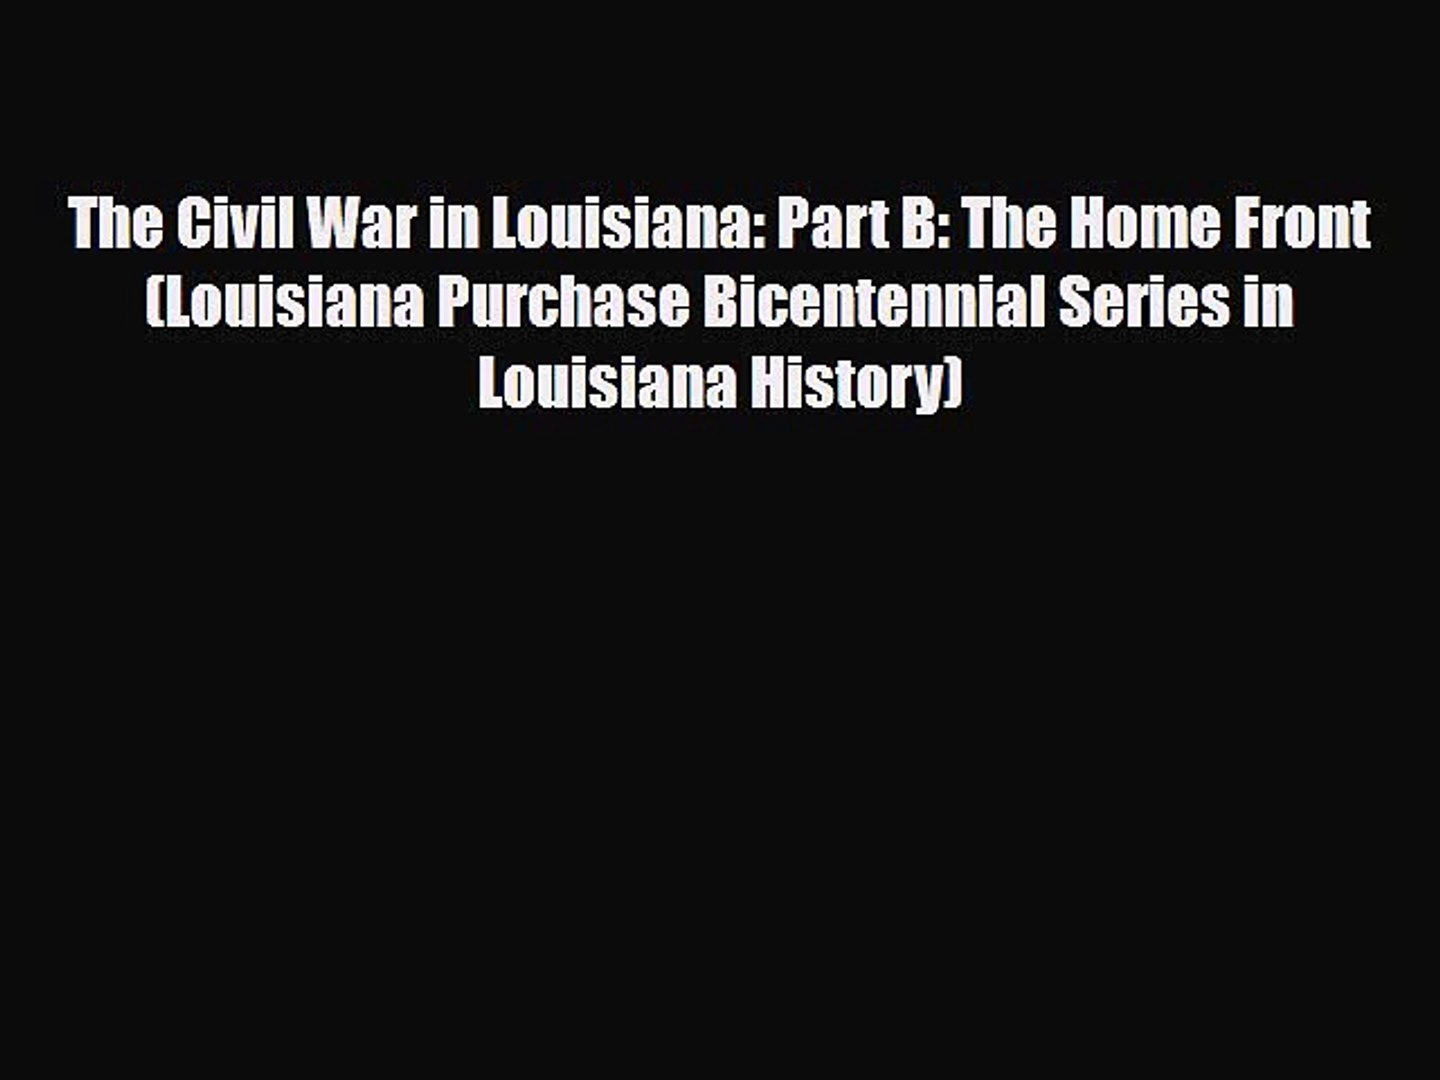 Download The Civil War in Louisiana: Part B: The Home Front (Louisiana Purchase Bicentennial